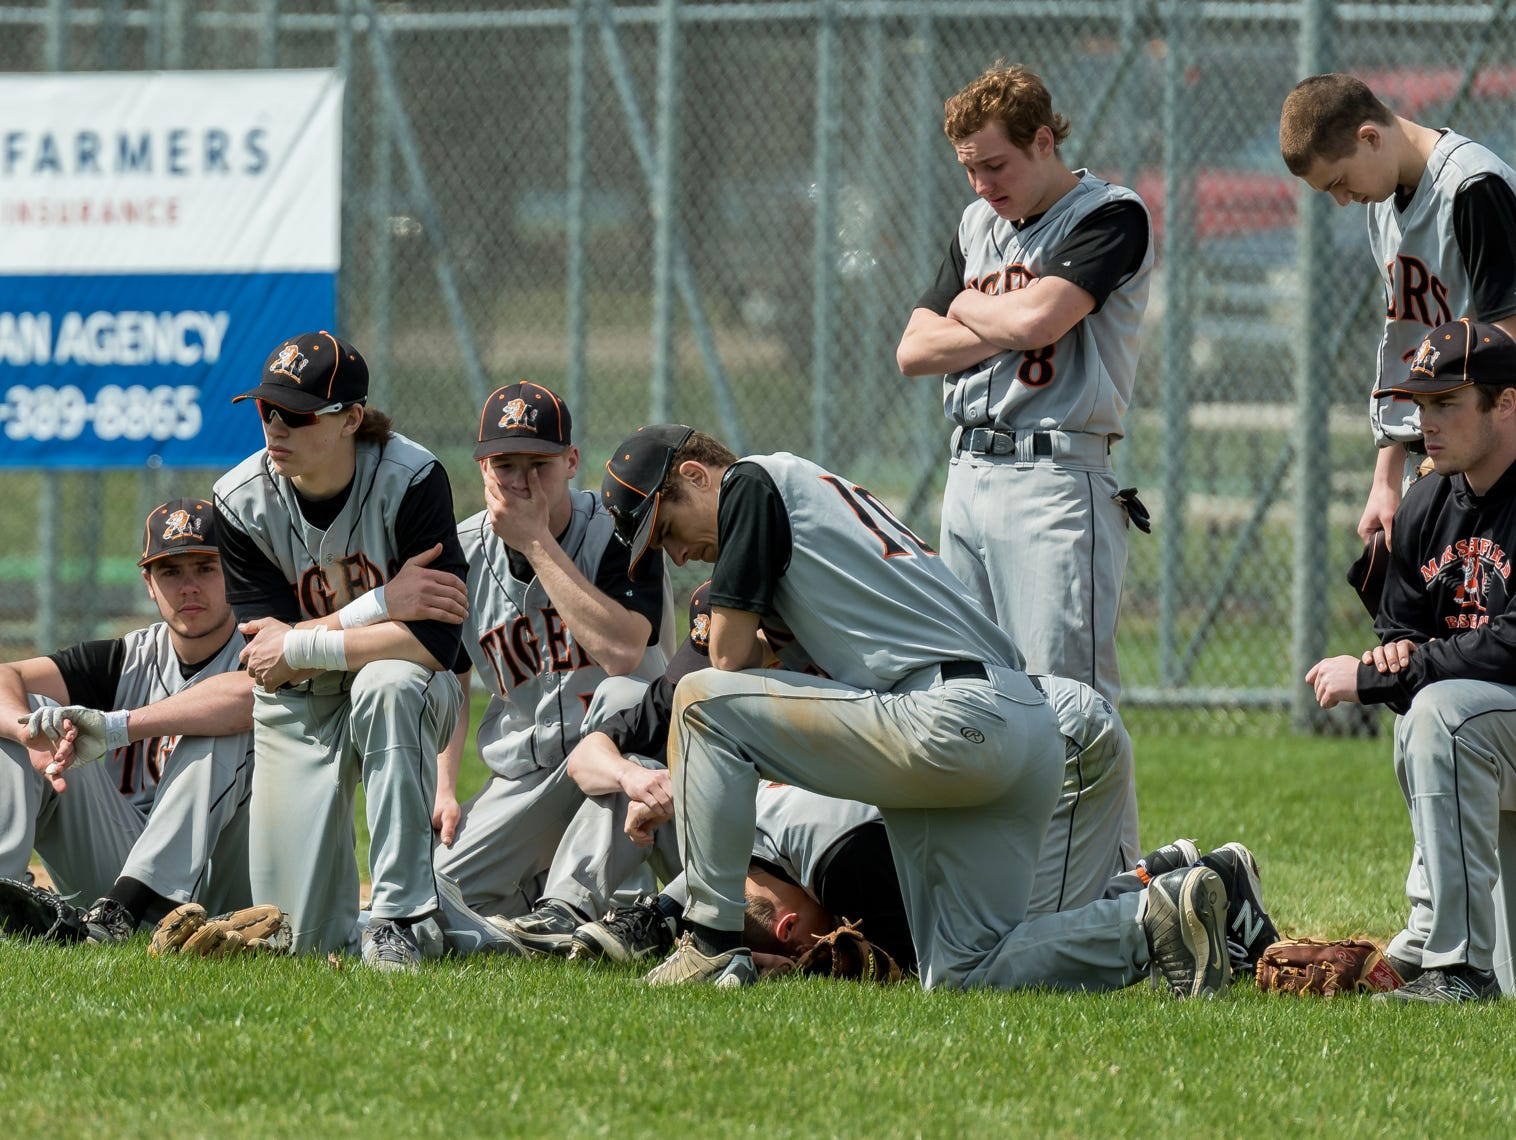 The Marshfield High School baseball team reacts Saturday after teammates Trevor Schwecke, 17, and Braden Bohman, 15, collided during a game against Chippewa Falls at Jack Hackman Field in Marshfield.